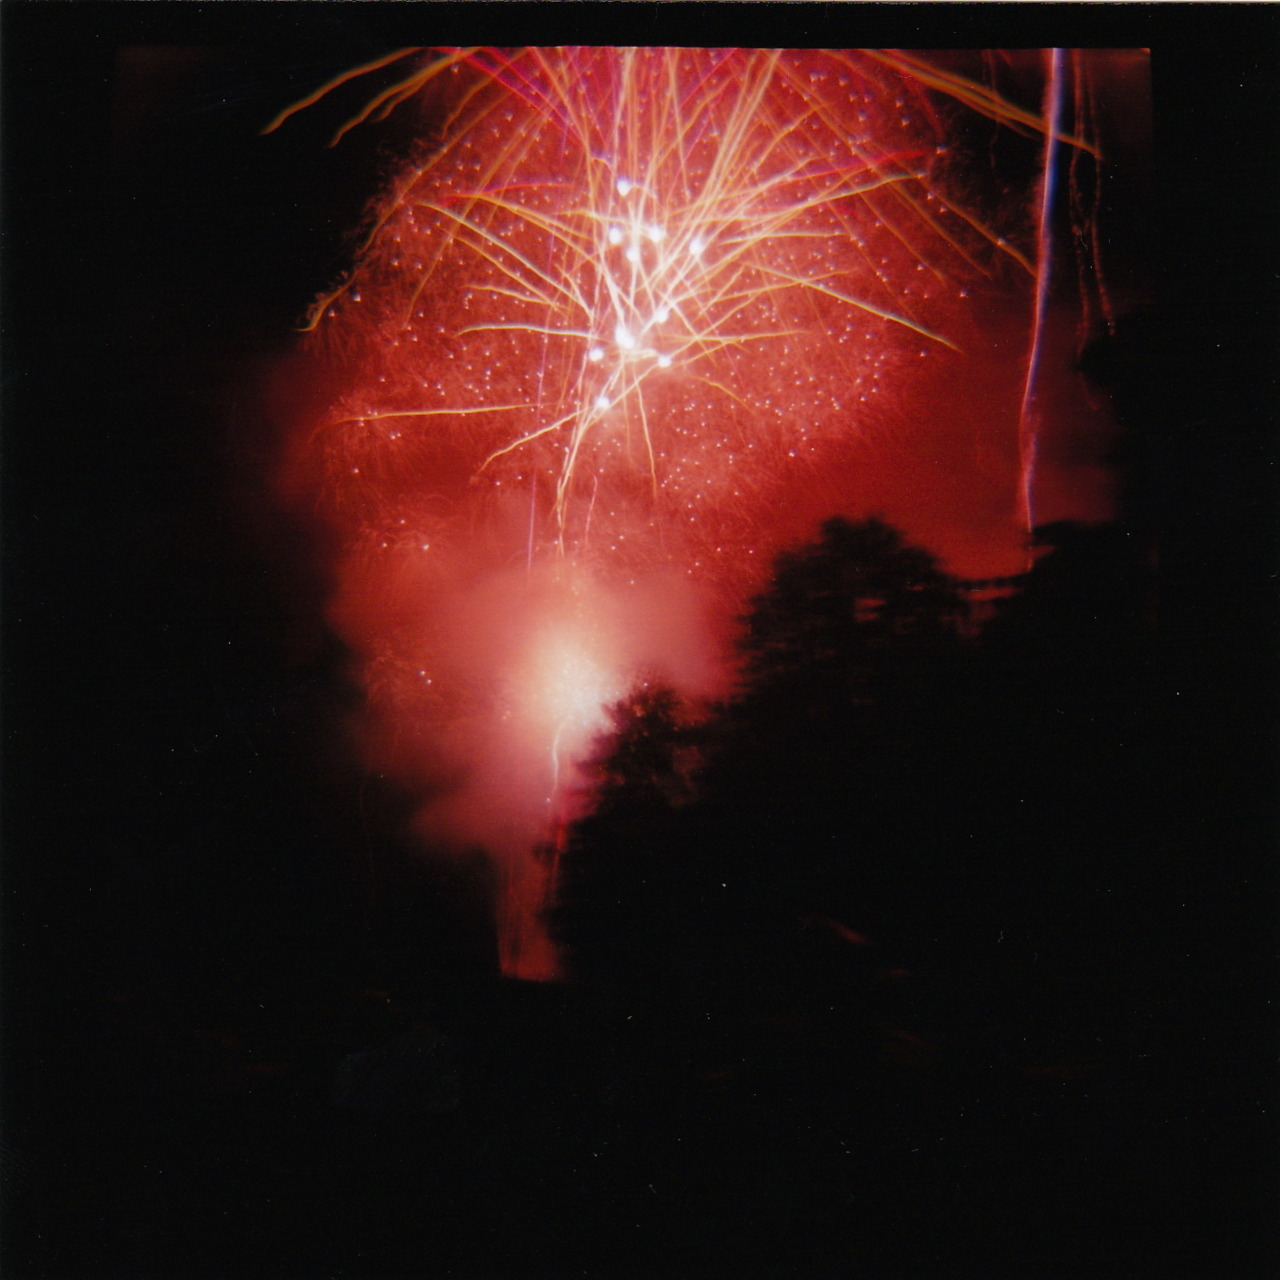 Fourth of July, 2011. Taken with a Diana F+, Kodak 120 color film.